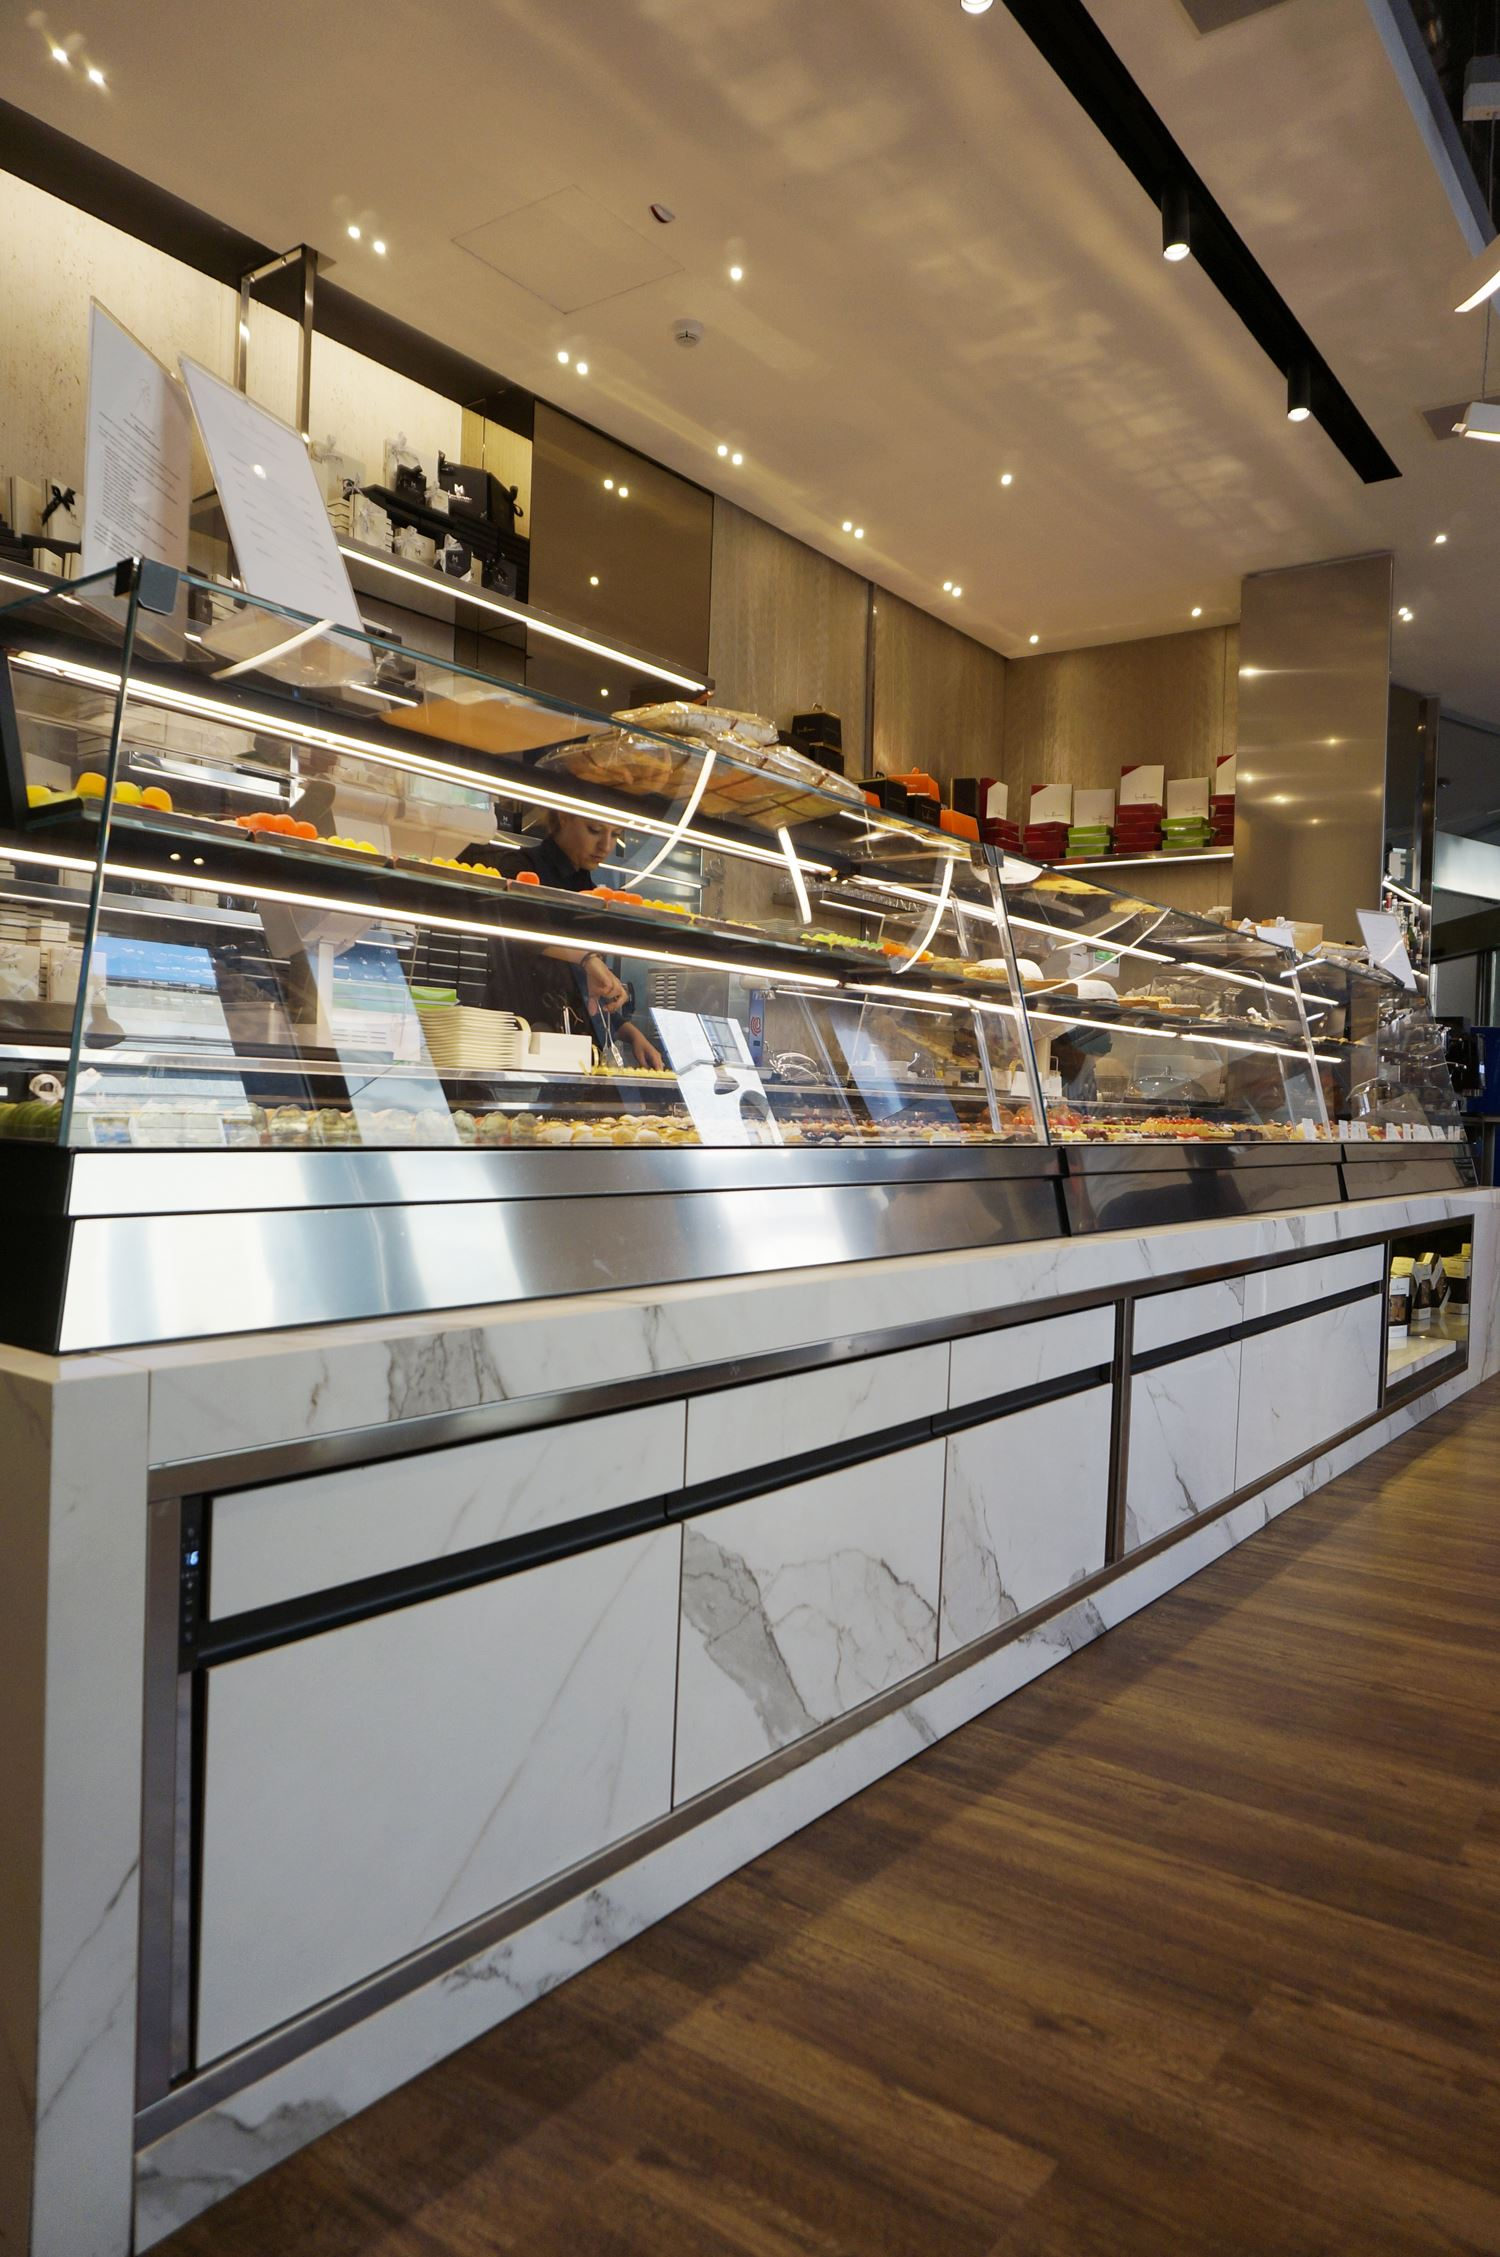 Patisserie Iginio Massari: Photo 5